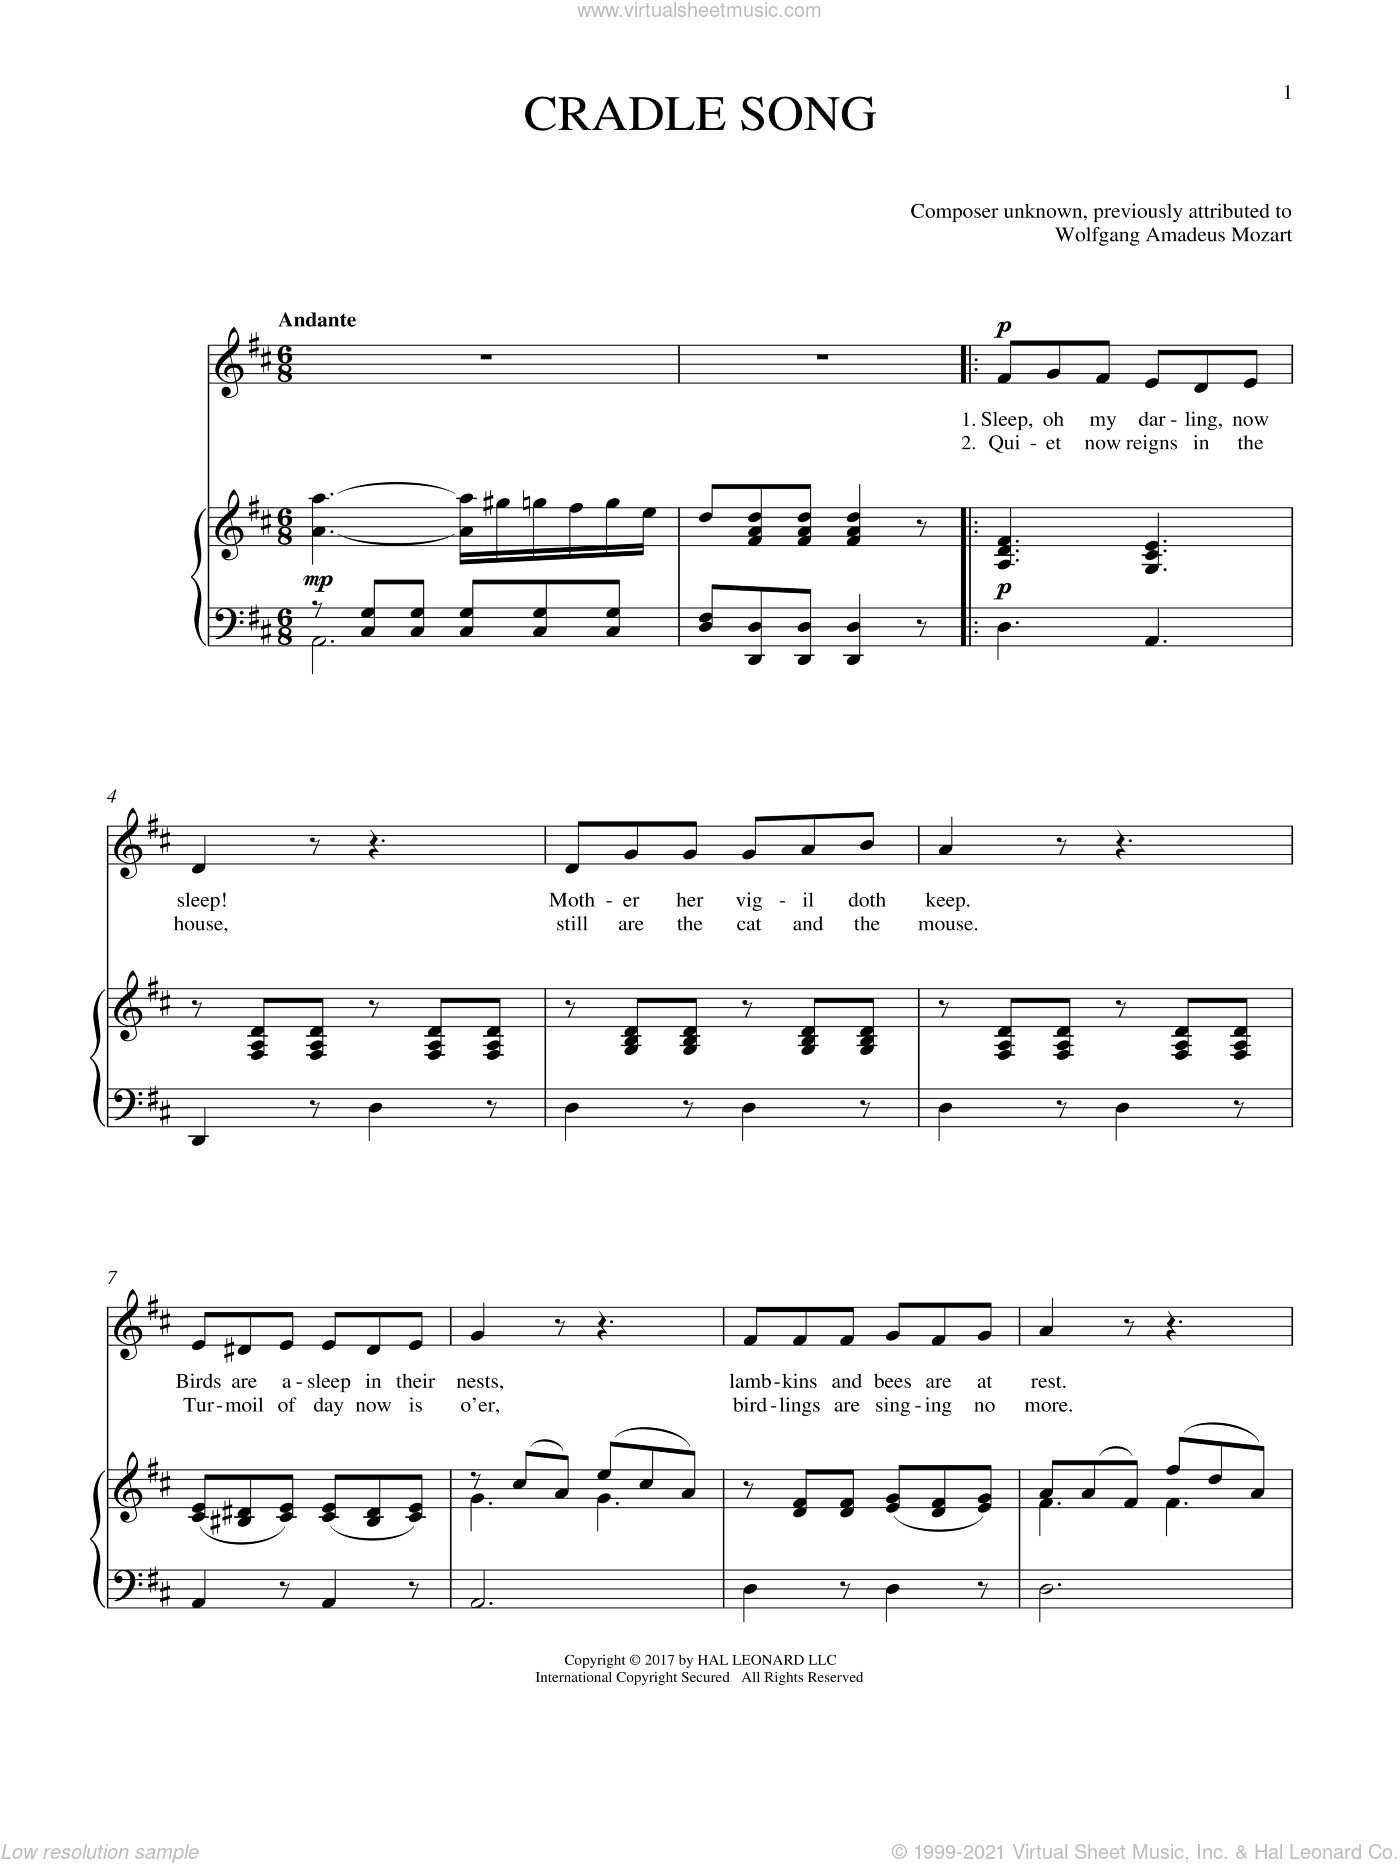 Cradle Song sheet music for voice and piano by Wolfgang Amadeus Mozart and Joan Frey Boytim, intermediate skill level